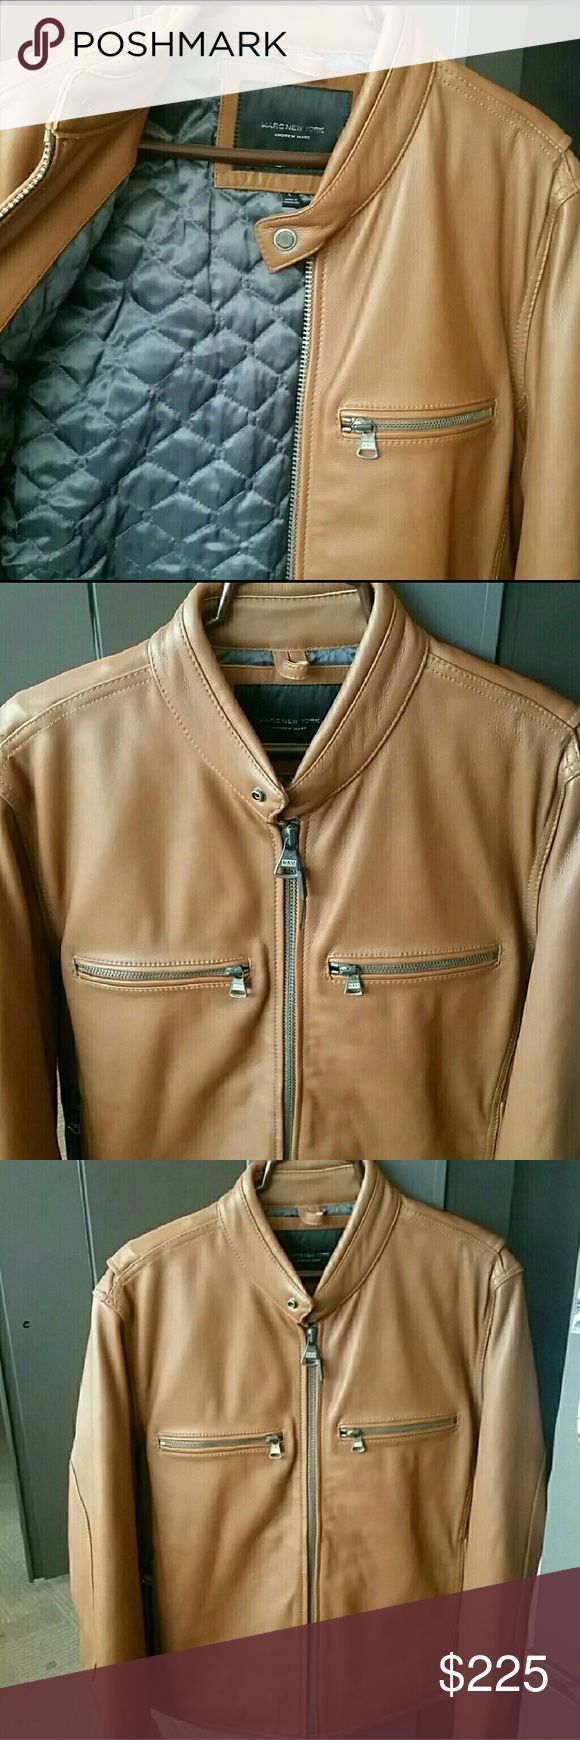 HOST PICK Andrew Marc Mens tan leather jacket HOST PICK for Men's Style Party. Andrew Marc Men's tan leather jacket, size L. Durable leather and gorgeous color. Lined with quilted material, pic 1. Beautiful details with 4 pockets and zippers, 2 on top front and 2 on sides.    Small marks/scratches in top back right, pic 7. Cosmetic flaw only, no tear/puncture. Reflected in sale price. All offers will be accepted or countered  SHELL: 100% LEATHER  BODY LINING: 52% POLYESTER, 48% VISCOSE SEEVE…